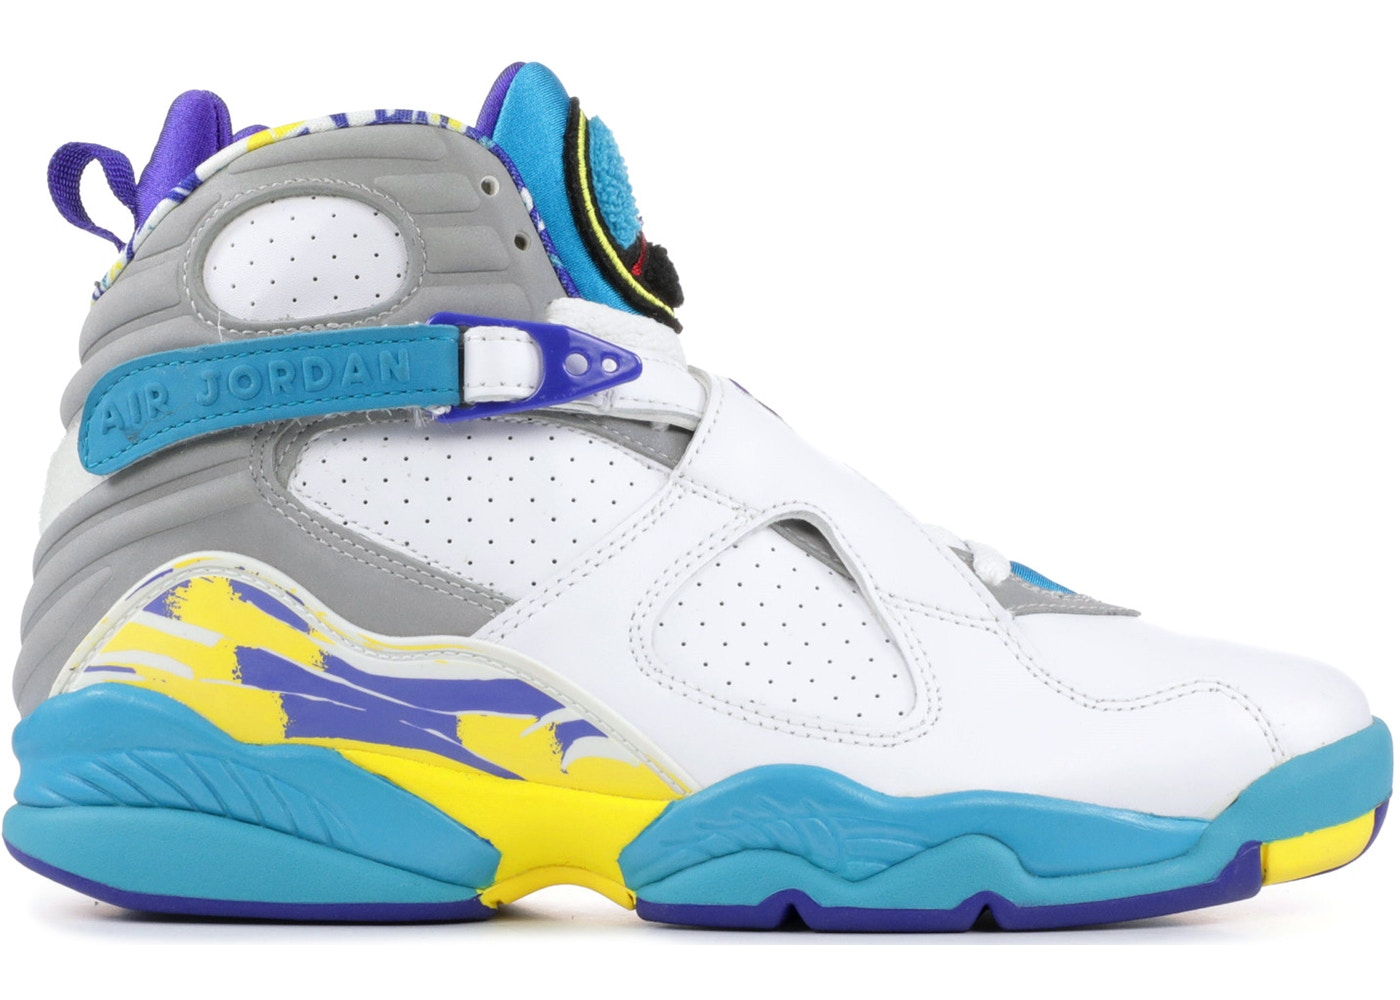 wholesale dealer 105e9 ba1c7 Jordan 8 Retro White Aqua (W) (2007)